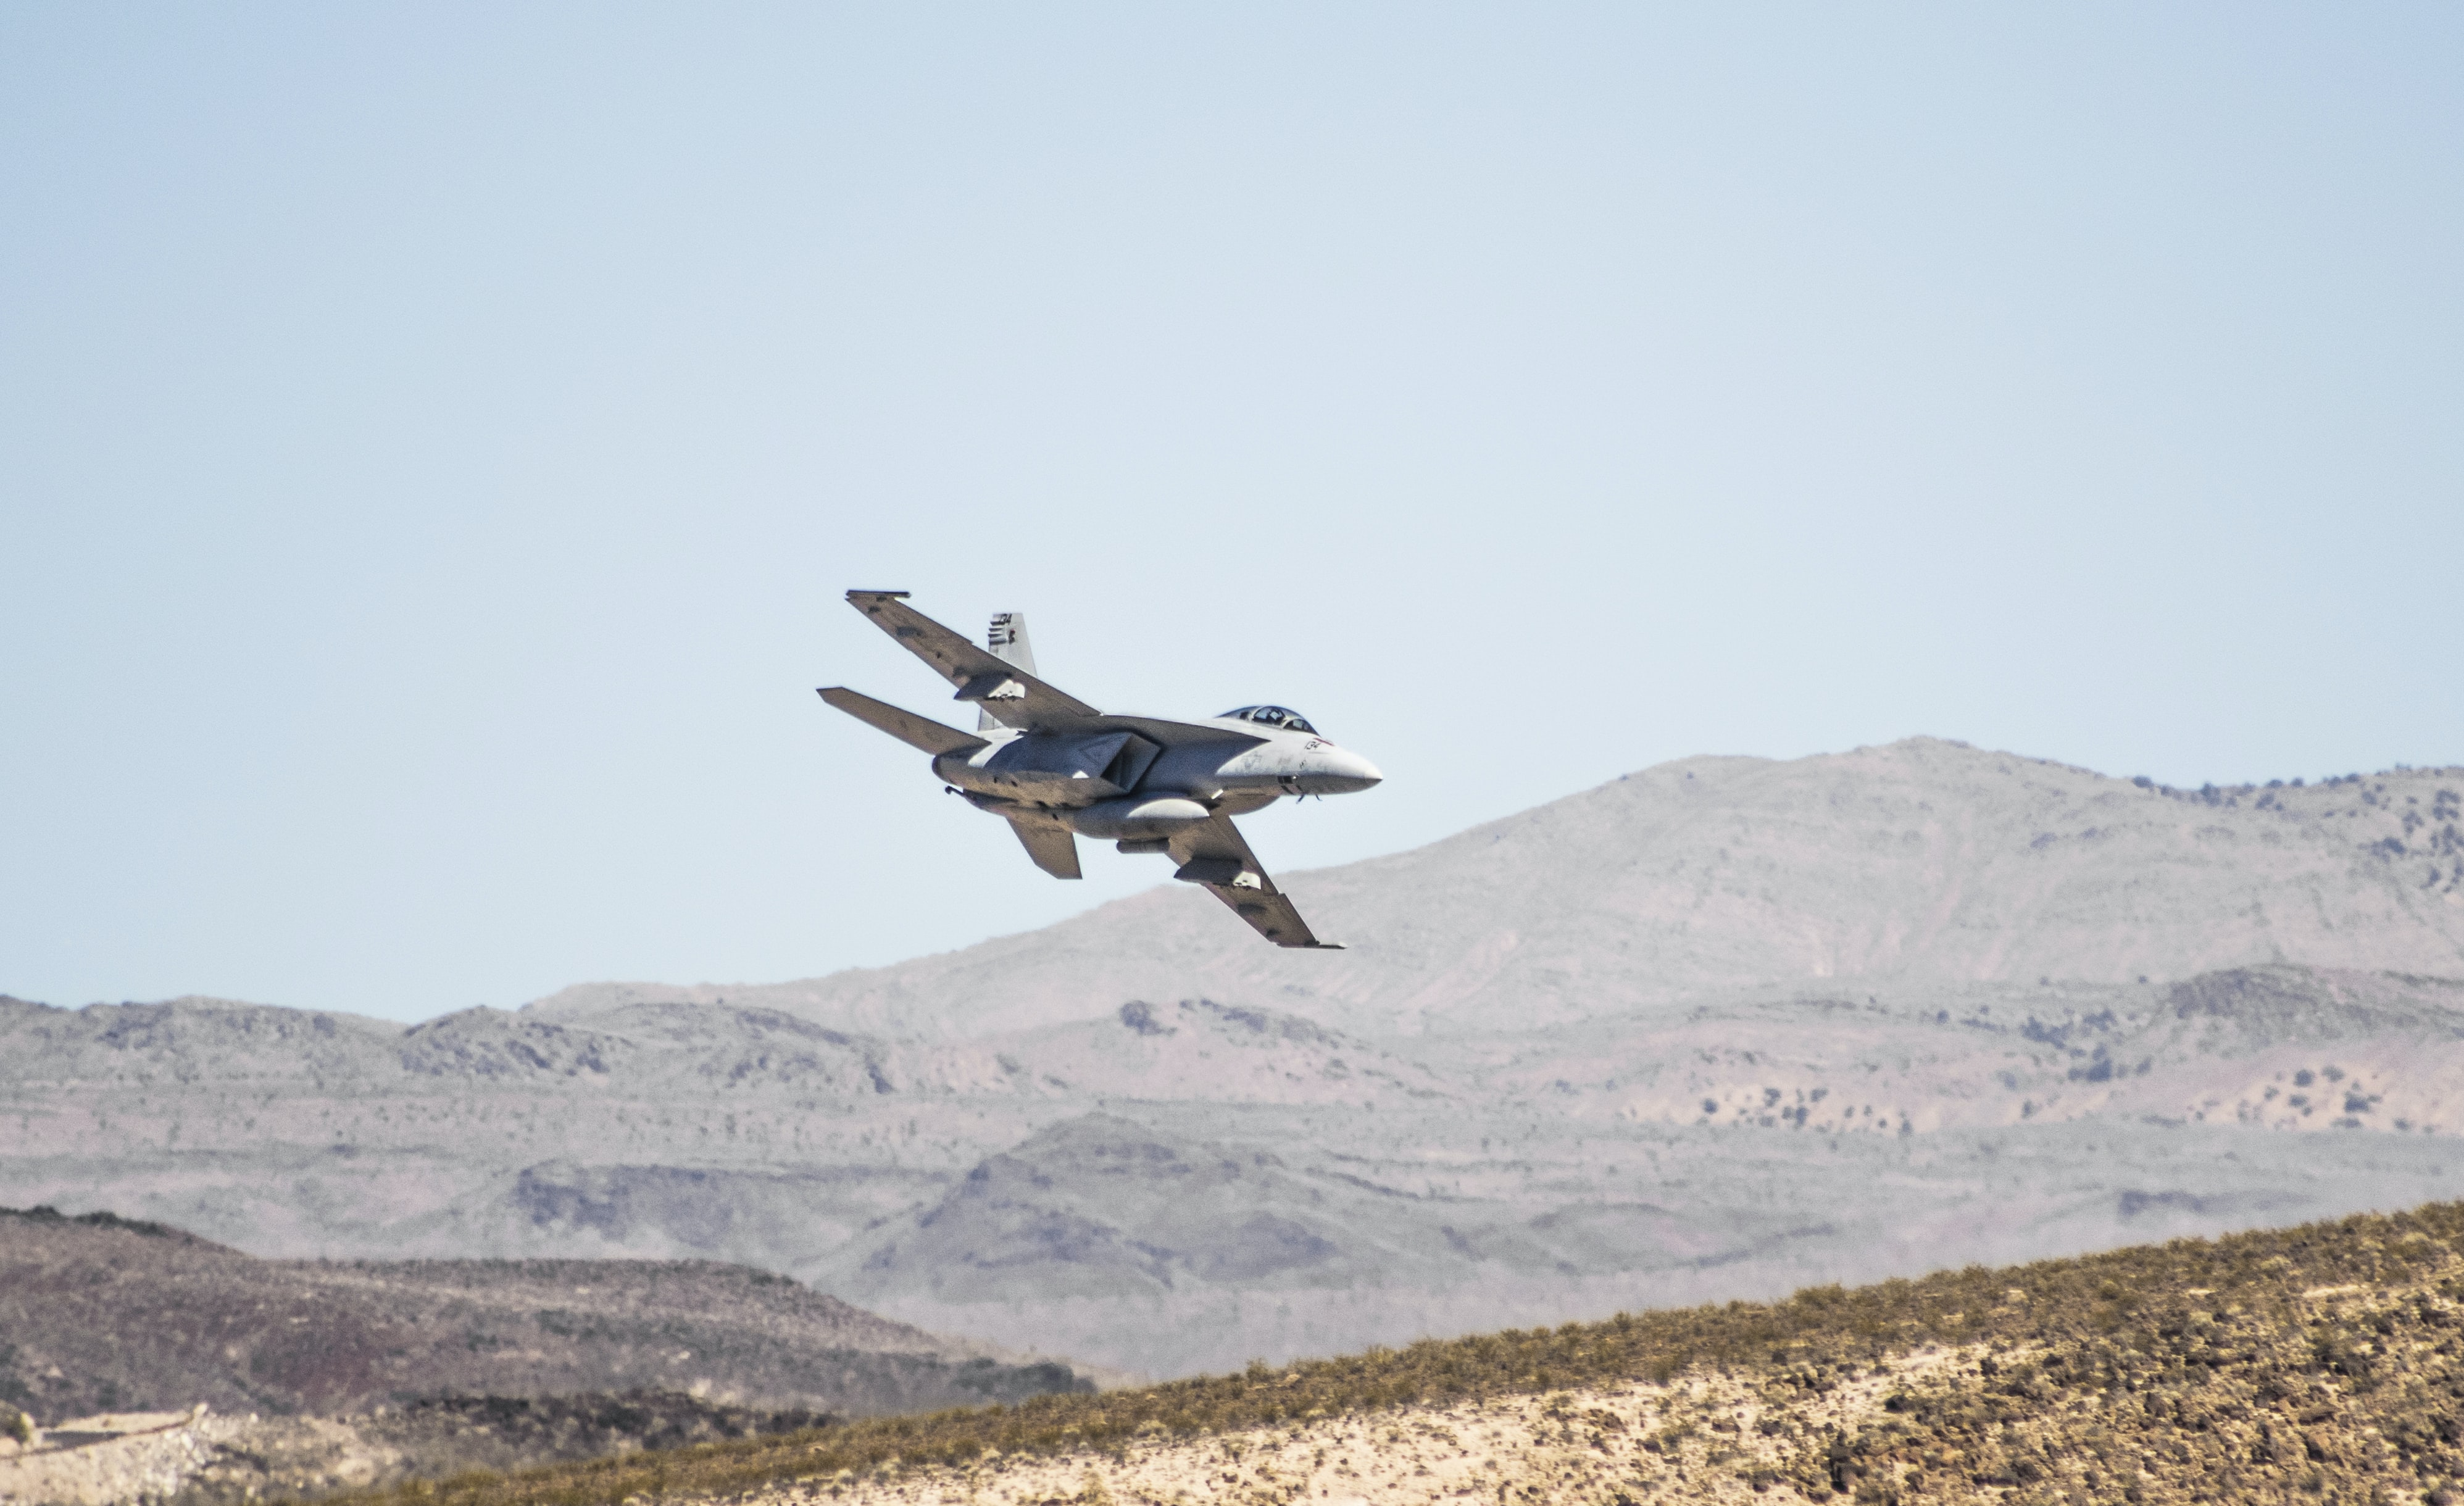 Military airplane flies over the desert